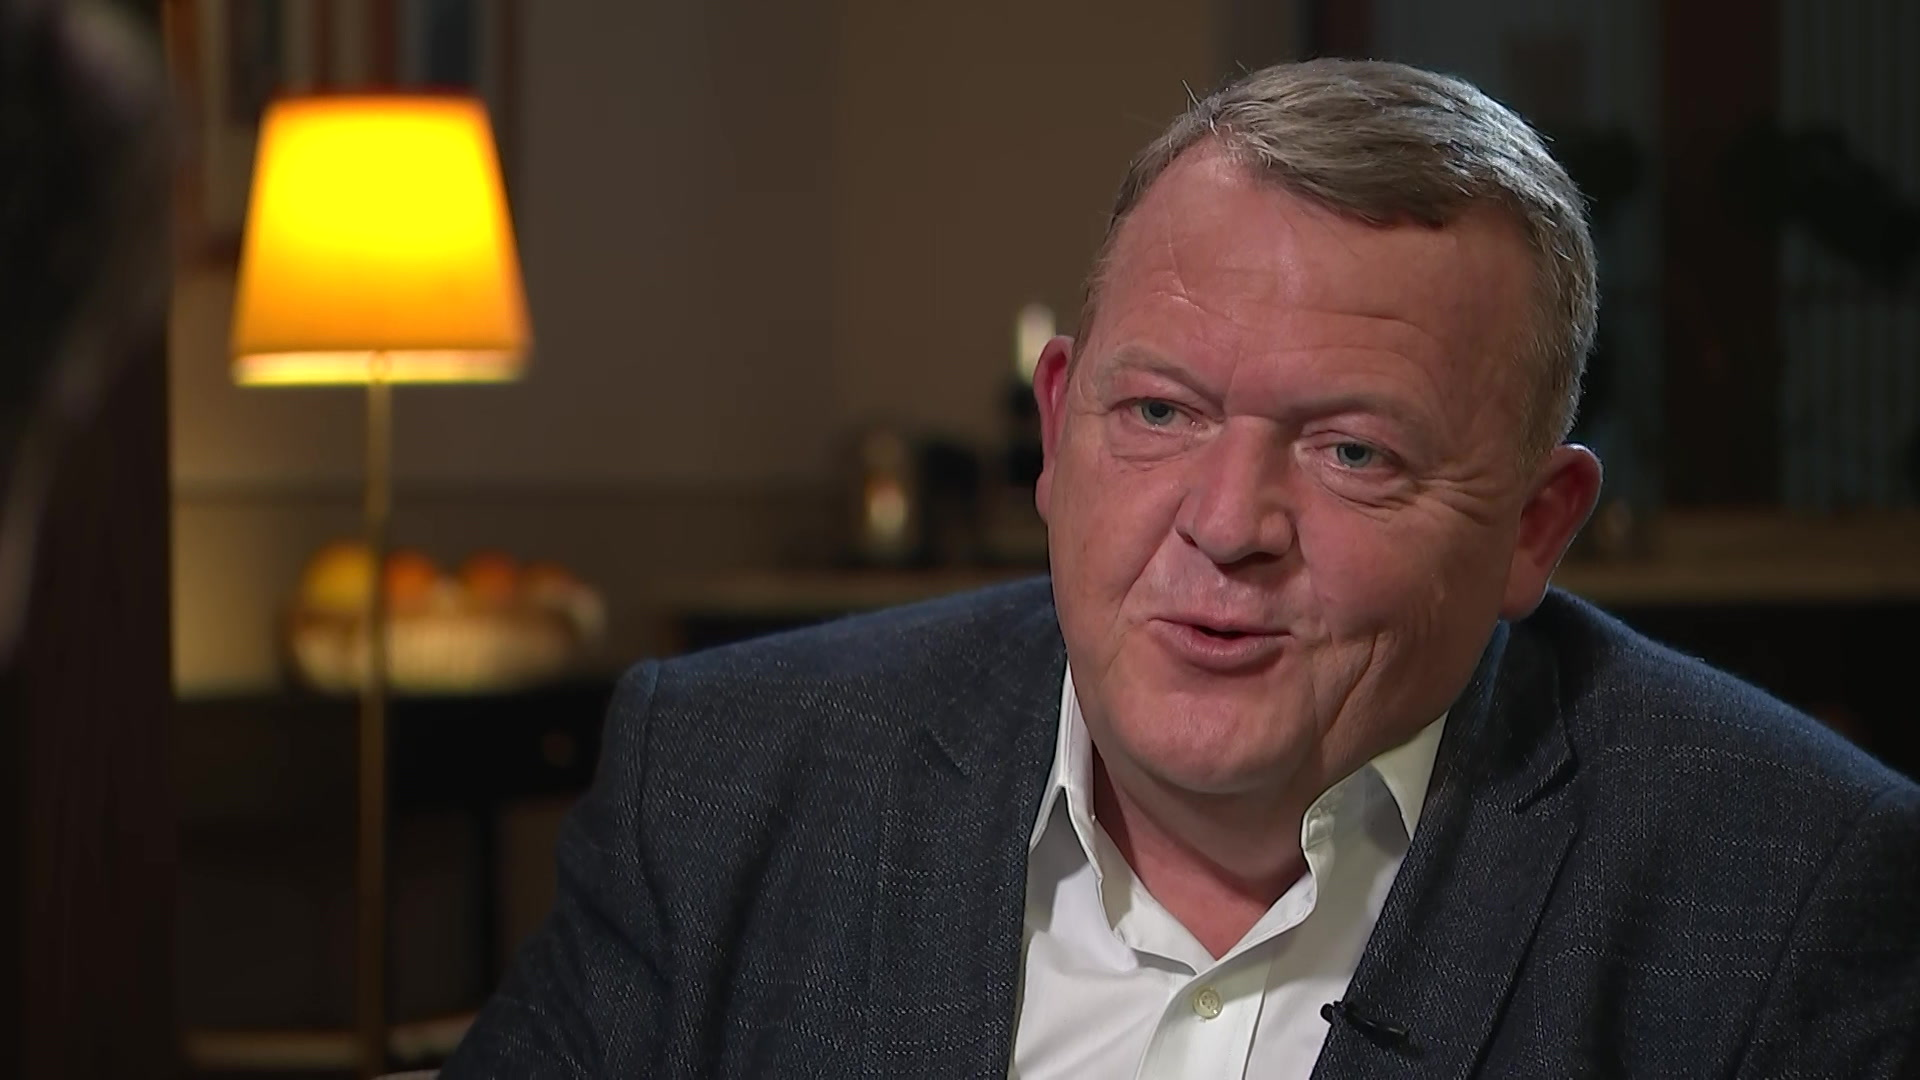 lars_loekke_interview.jpg